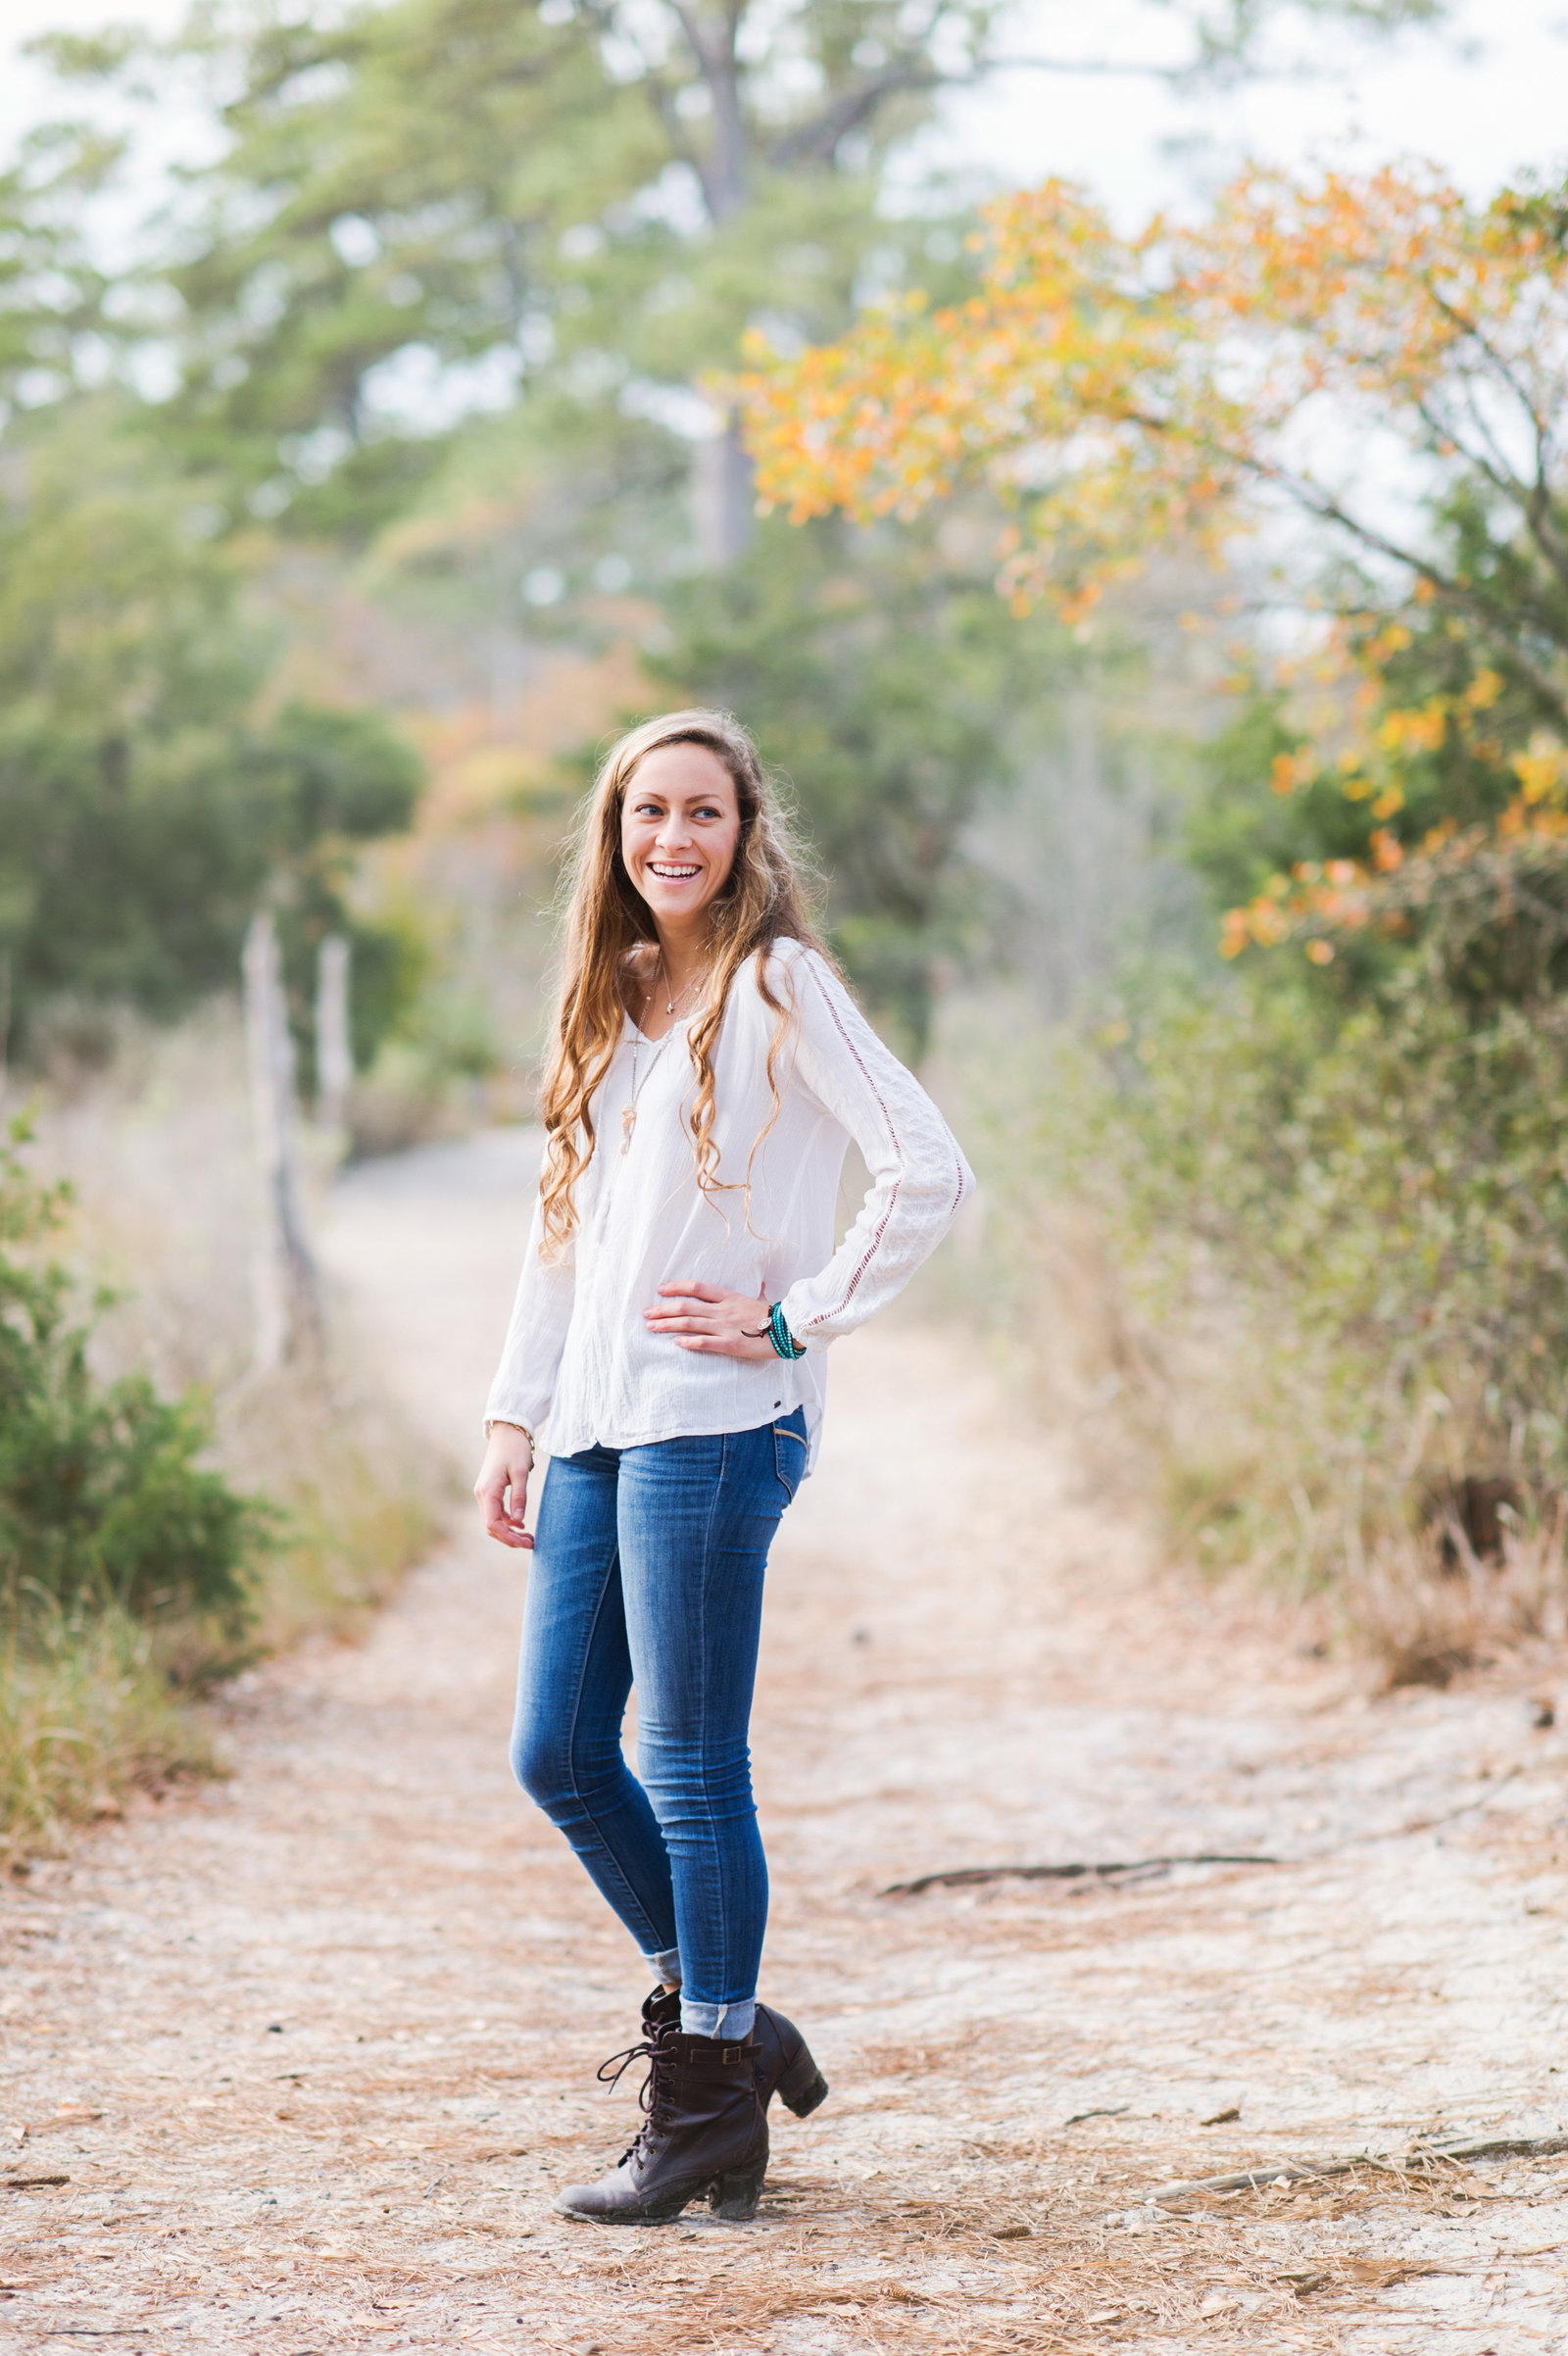 Renee_SeniorSession-0001